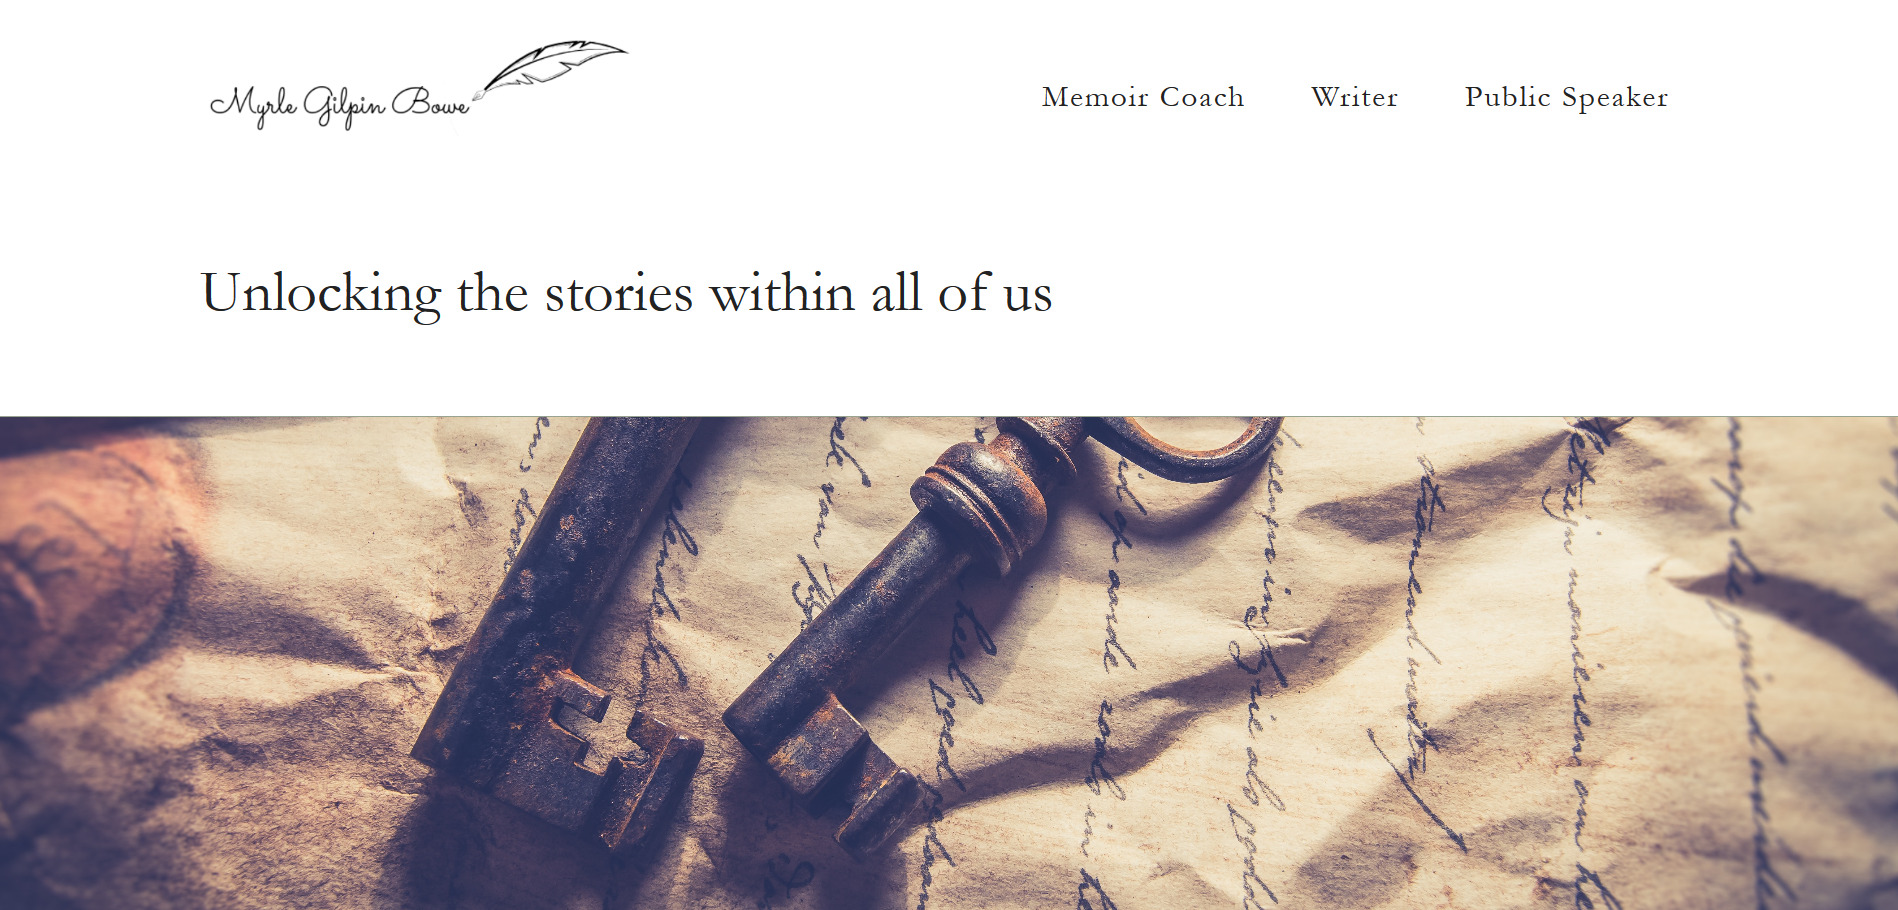 Myrle Gilpin Bowe memoir coach writer and speaker homepage